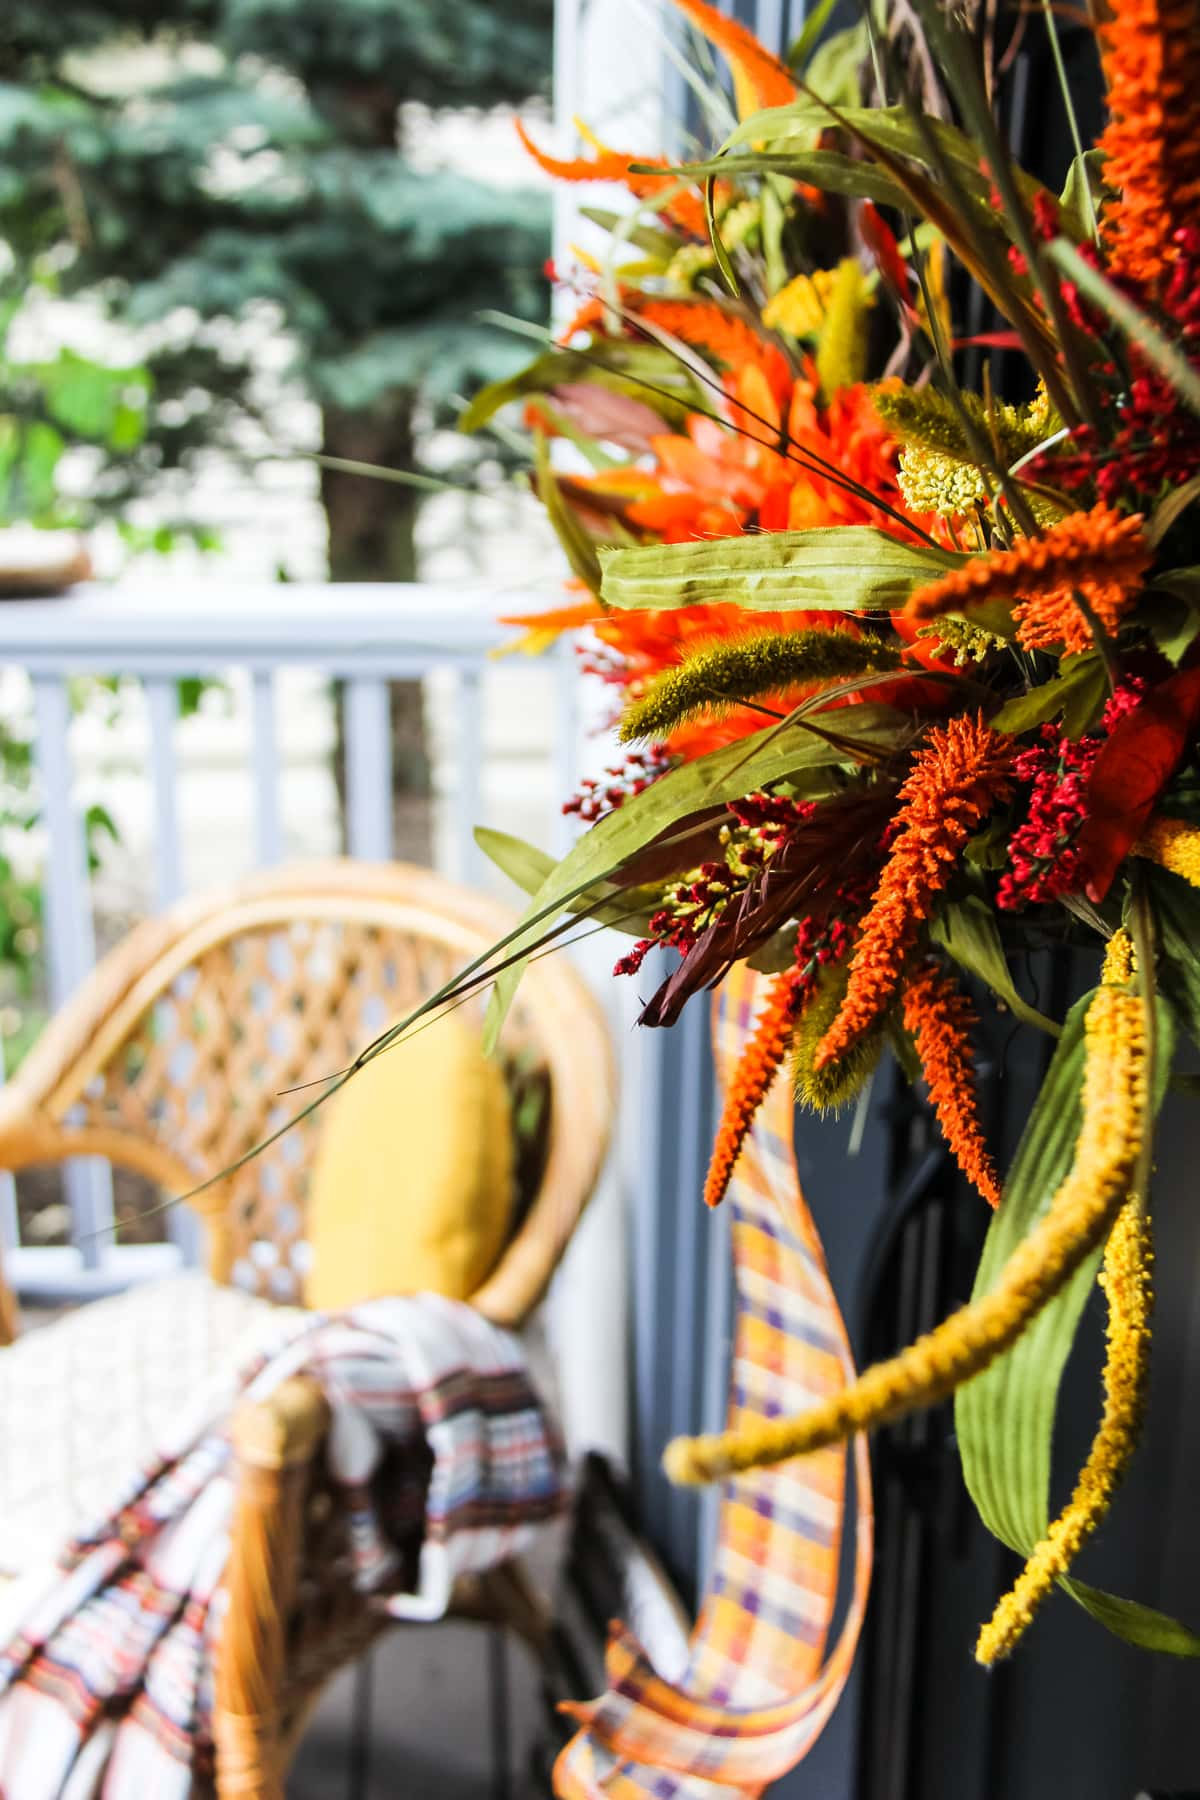 a side view close up of a fall wreath. in the background is a wicker chair with a yellow pillow and plaid blanket